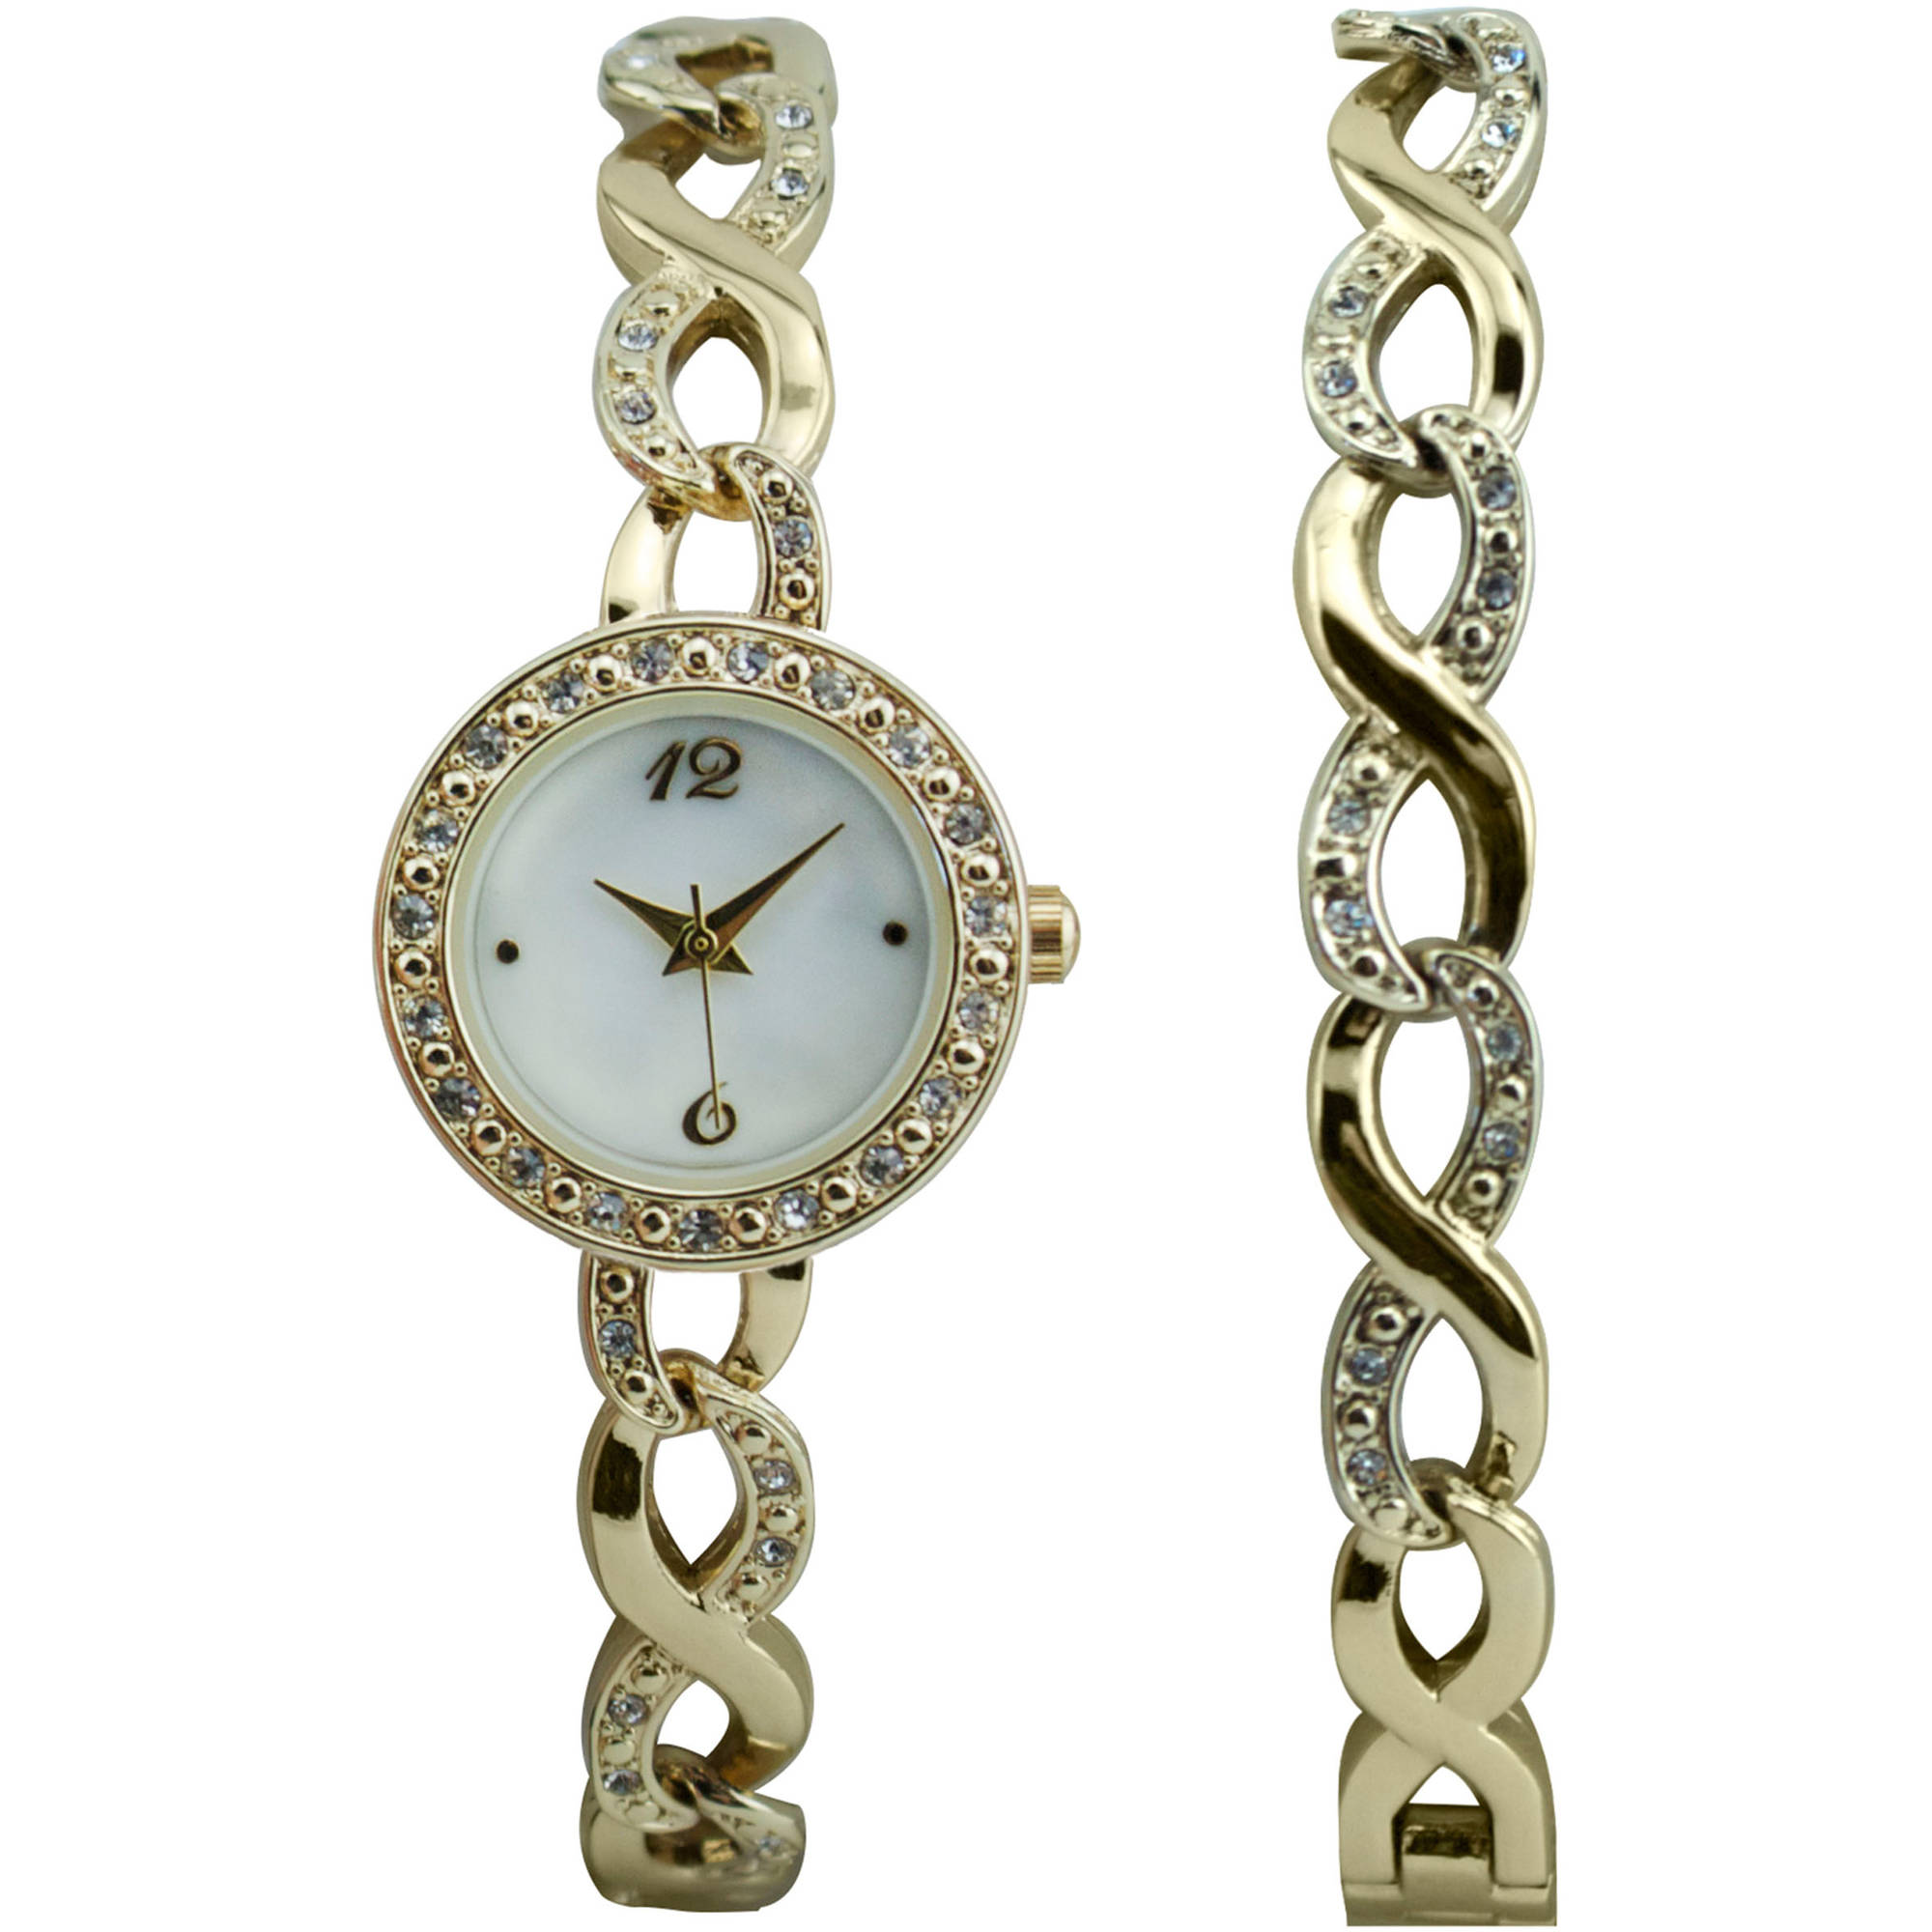 Women's Watch and Bracelet Gift Set, Gold-Tone